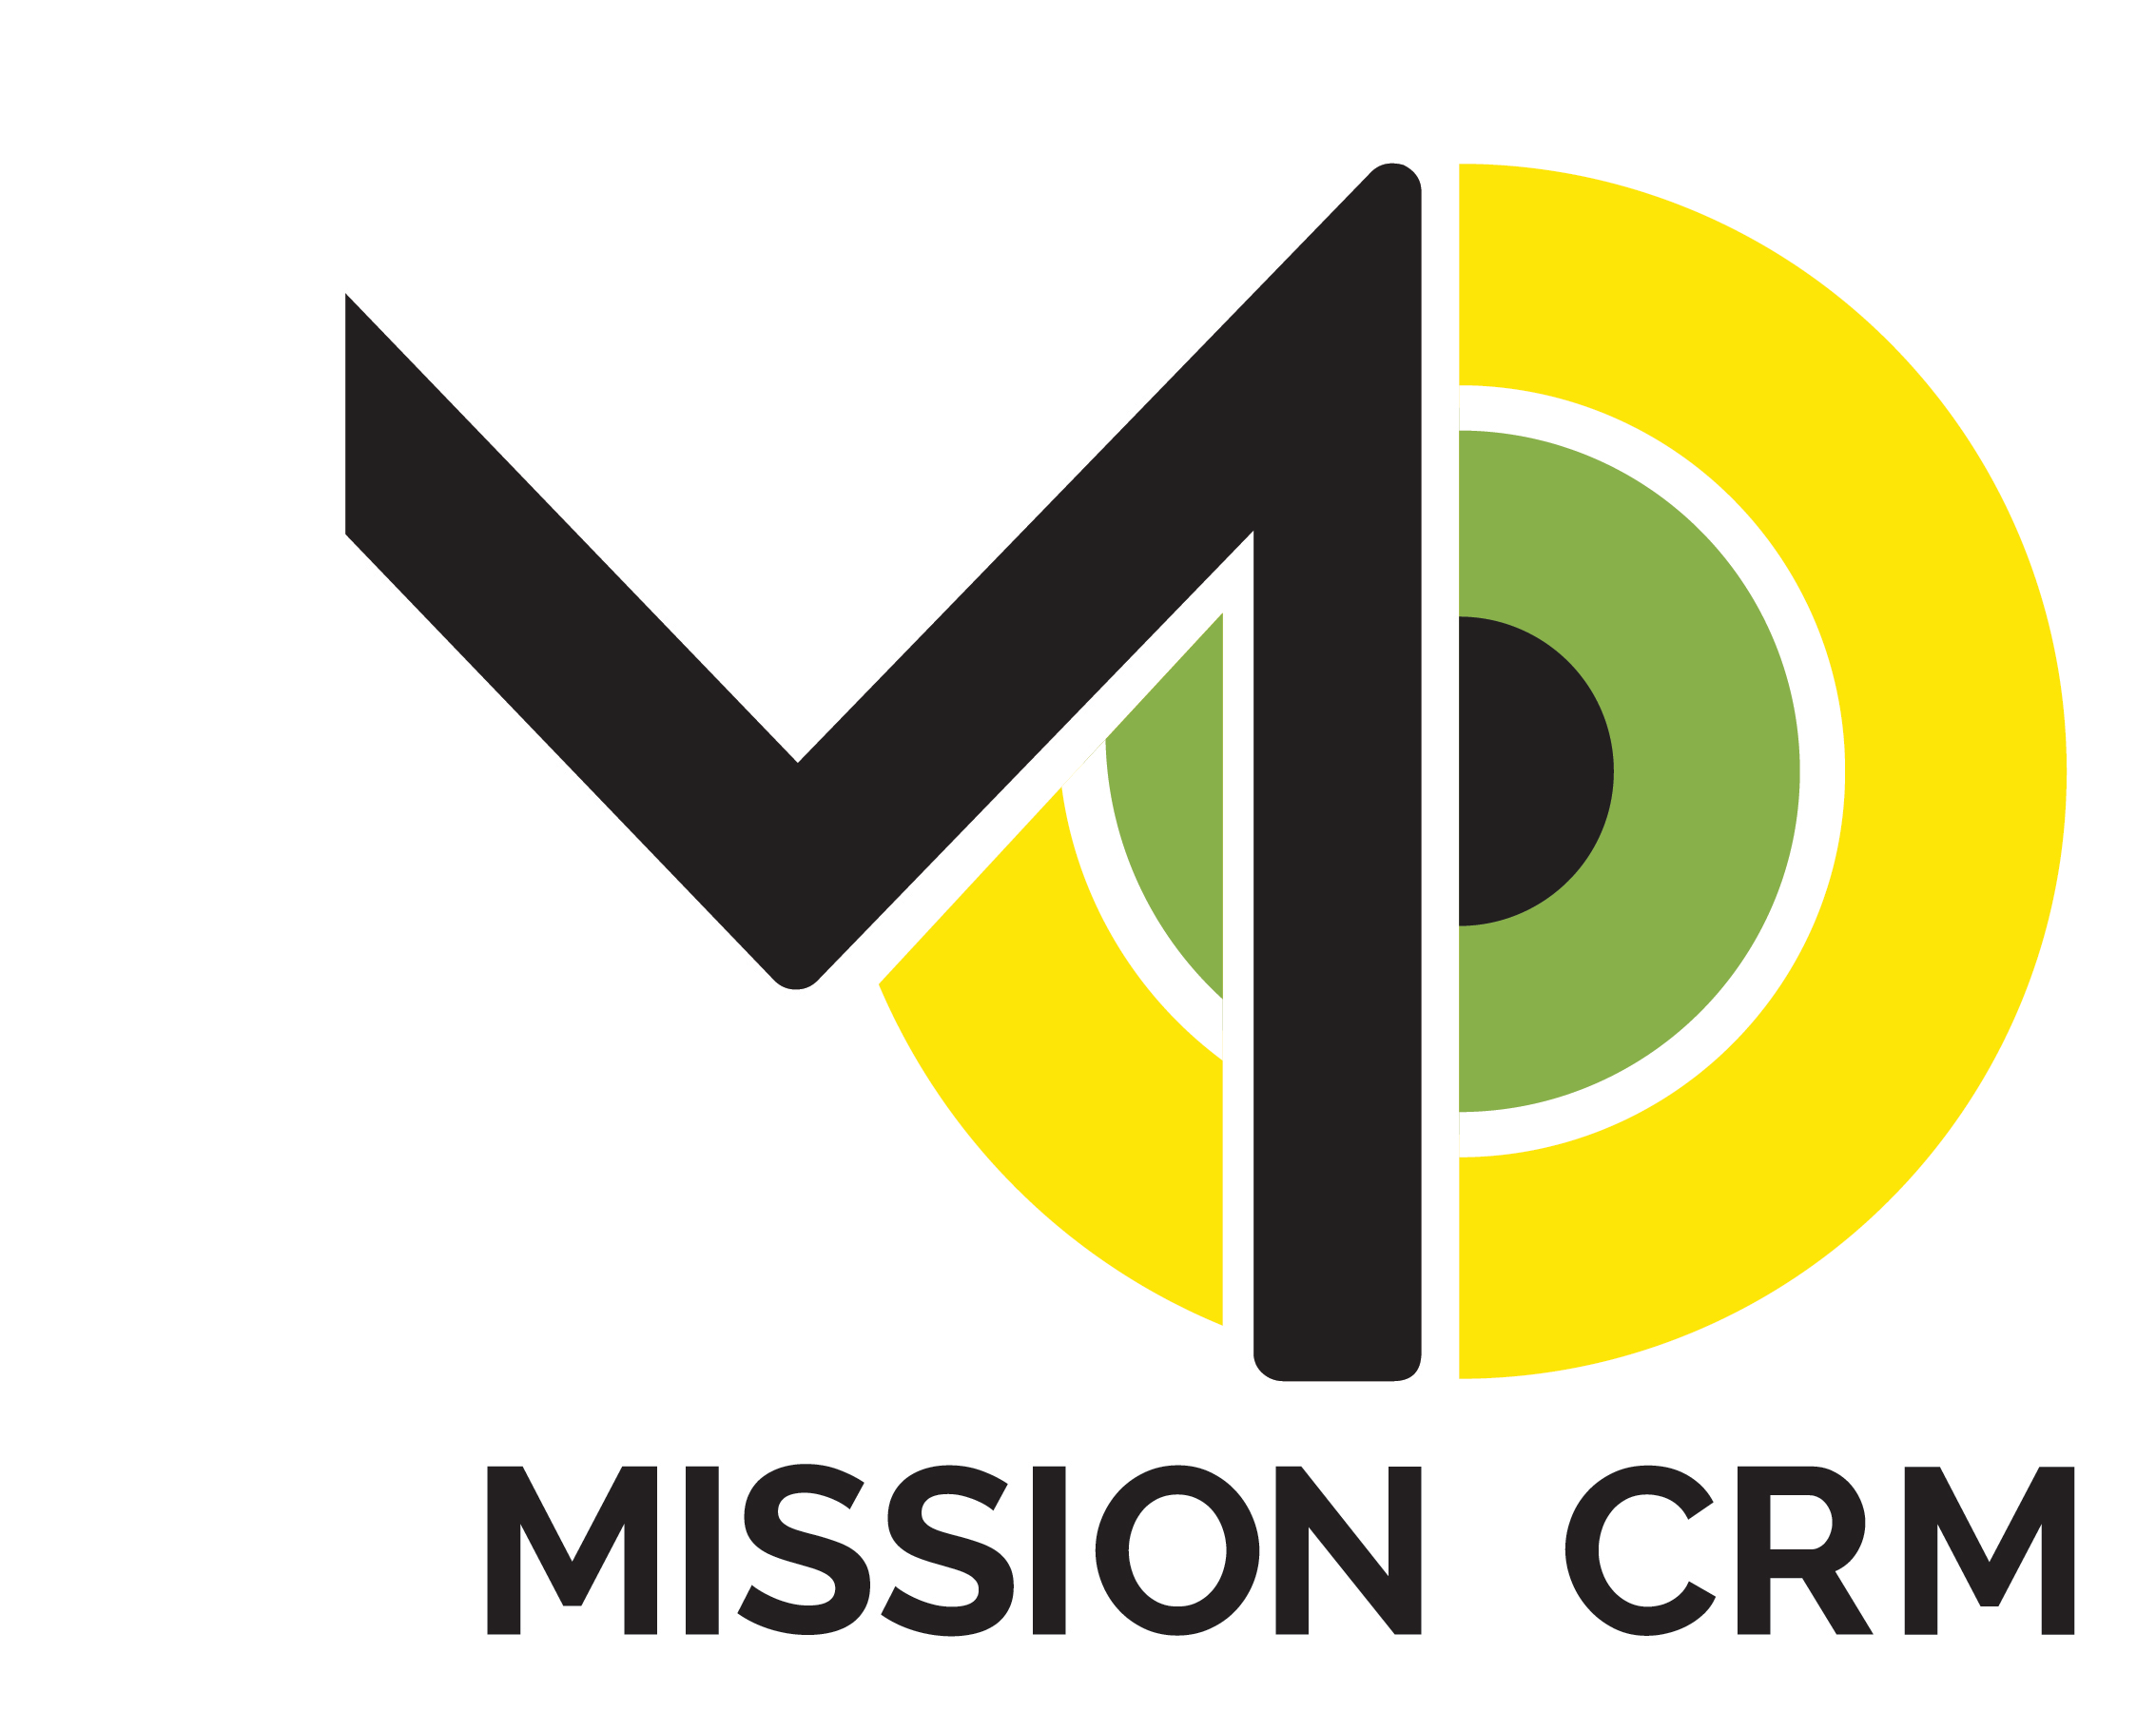 MISSION CRM